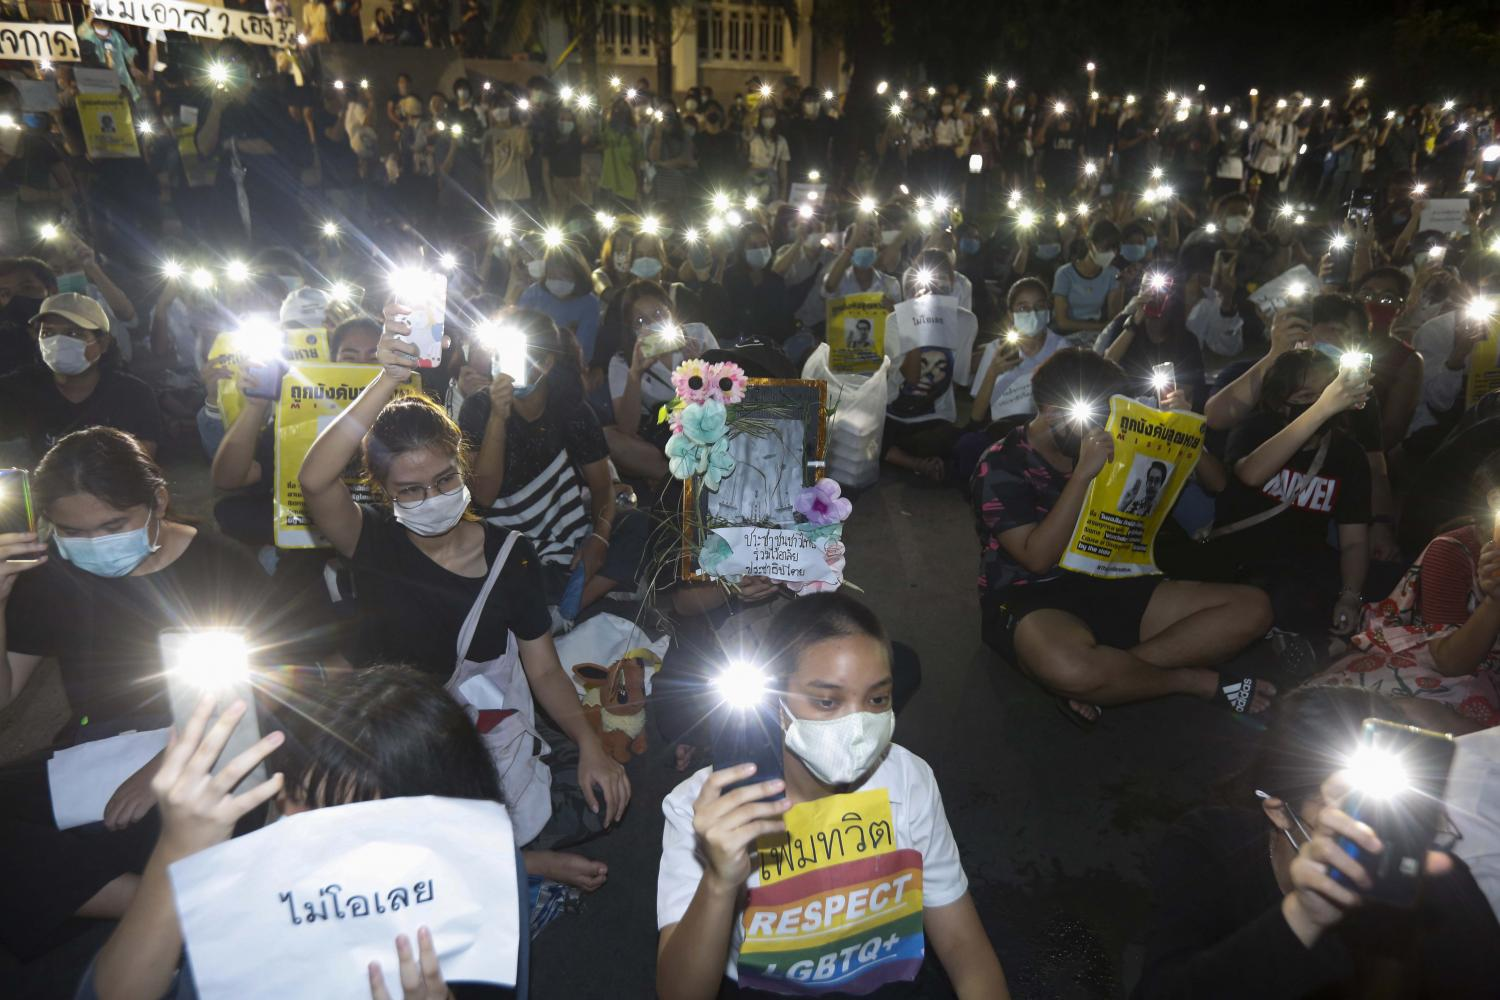 Kasetsart University students shine lights from their mobile phones during a rally at the university's Bang Khen campus. Their demands include charter changes, dissolution of the House and an end to violations of people's rights and freedoms.(Photo by Pattarapong Chatpattarasill)